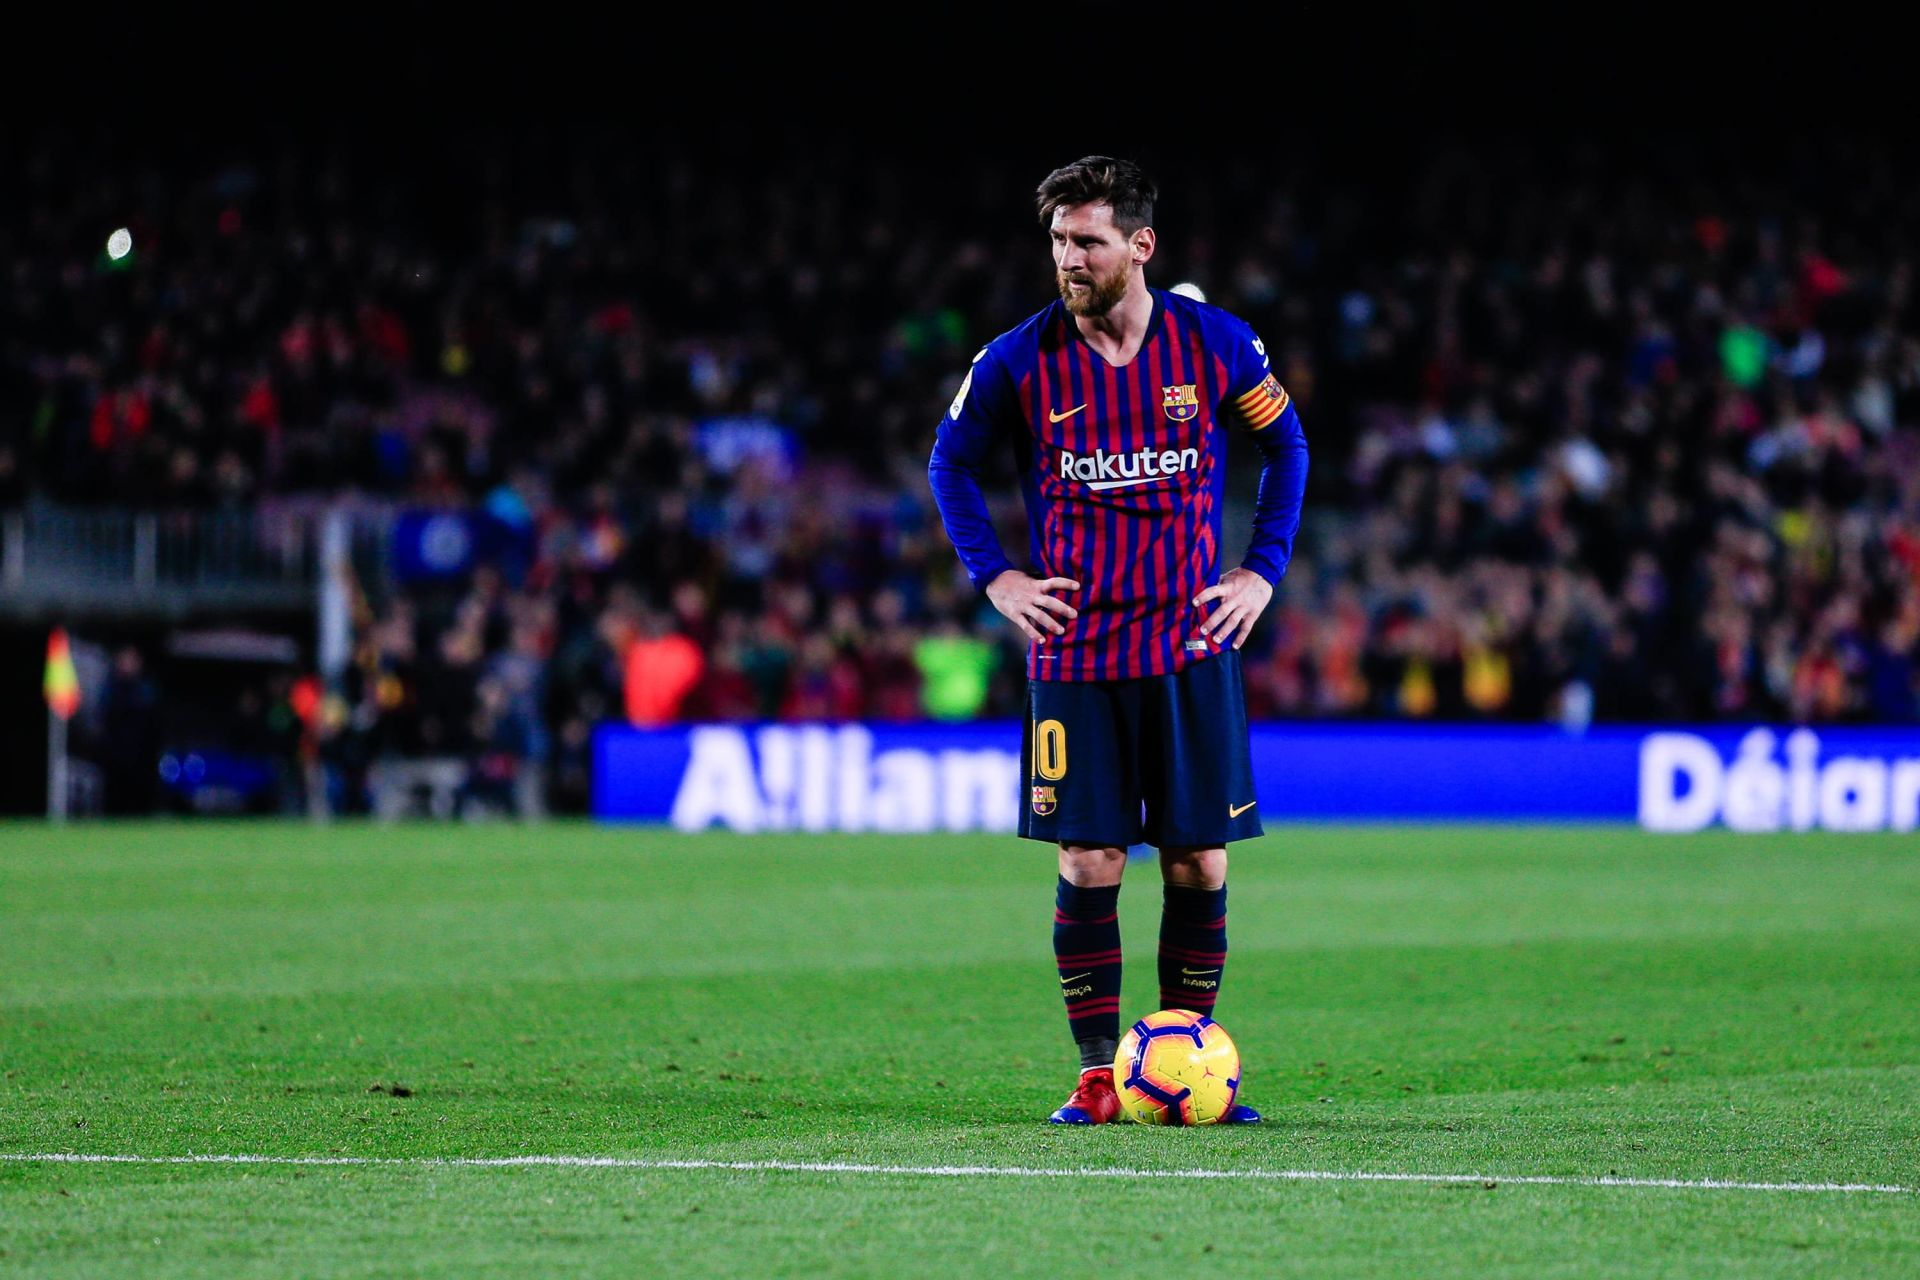 December 22, 2018 - Barcelona, BARCELONA, Spain - 10 Leo Messi of FC Barcelona during the Spanish championship La Liga football match between FC Barcelona and Celta de Vigo on December 22, 2018 at Camp Nou stadium in Barcelona, Spain. (Credit Image: © AFP7 via ZUMA Wire) LIGA HISZPANSKA PILKA NOZNA SEZON 2018/2019 FOT. ZUMA/NEWSPIX.PL POLAND ONLY! --- Newspix.pl *** Local Caption *** www.newspix.pl mail us: info@newspix.pl call us: 0048 022 23 22 222 --- Polish Picture Agency by Ringier Axel Springer Poland